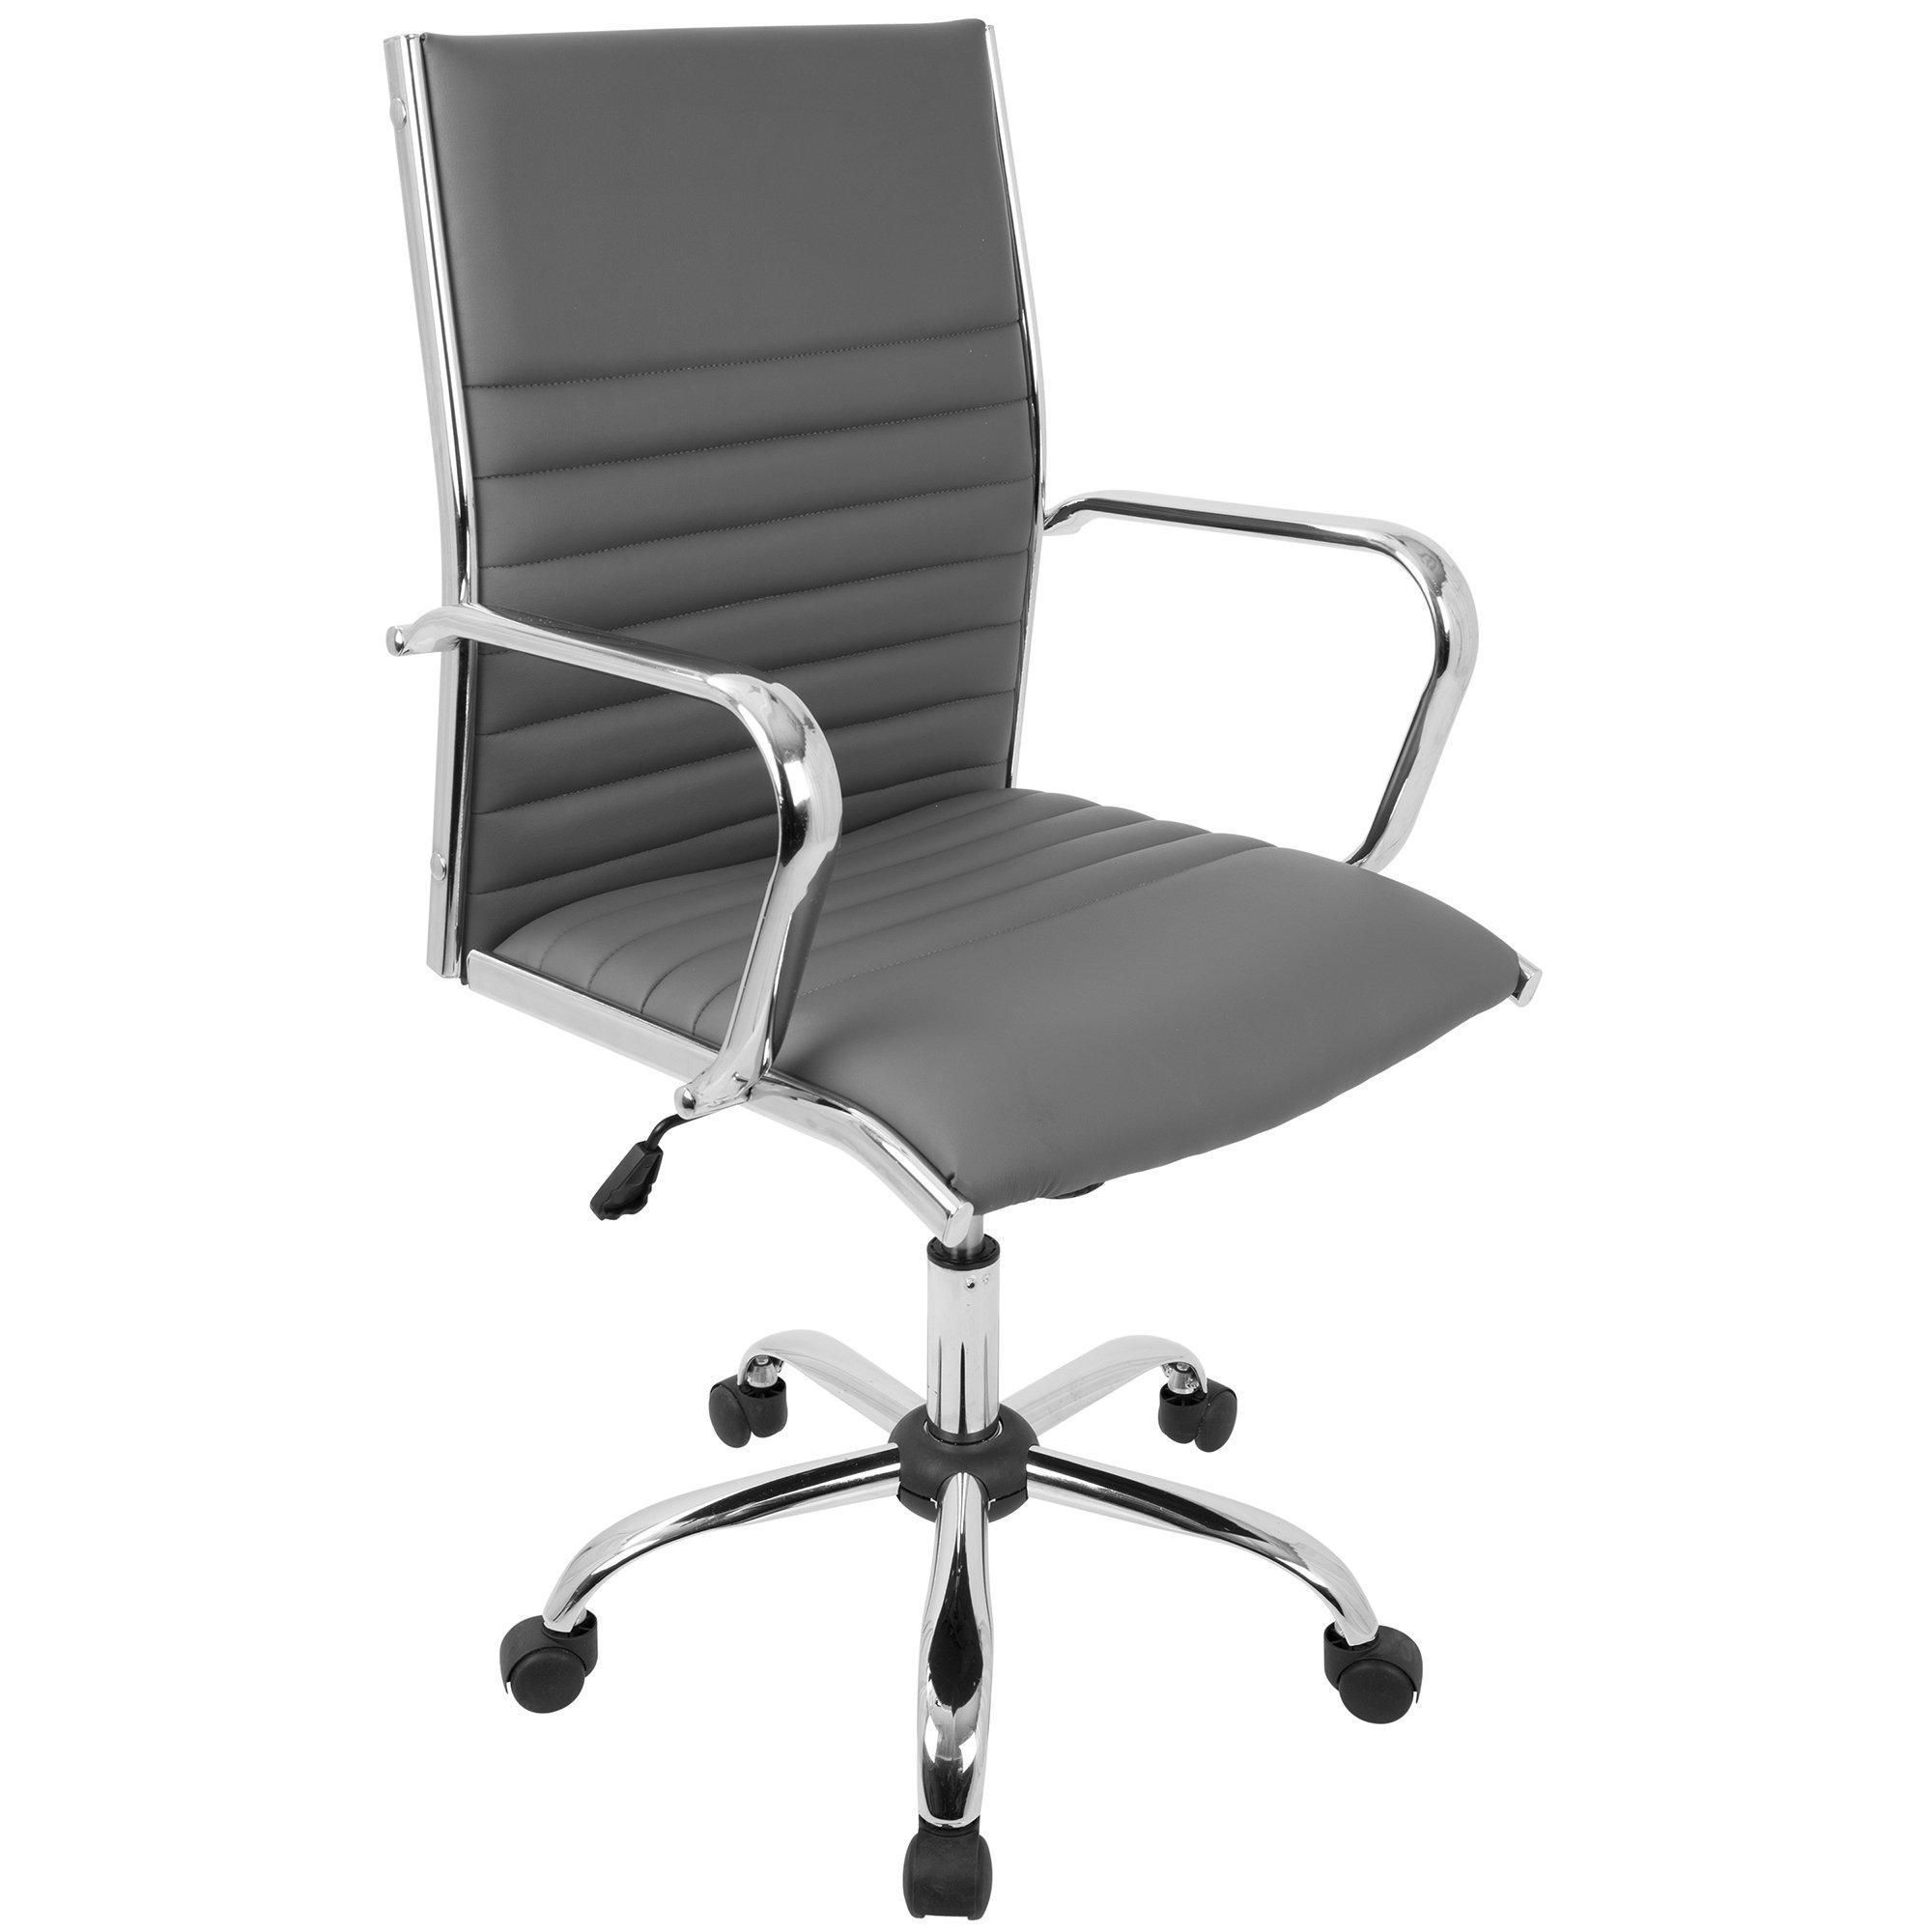 Master Contemporary Adjustable Office Chair with Swivel in